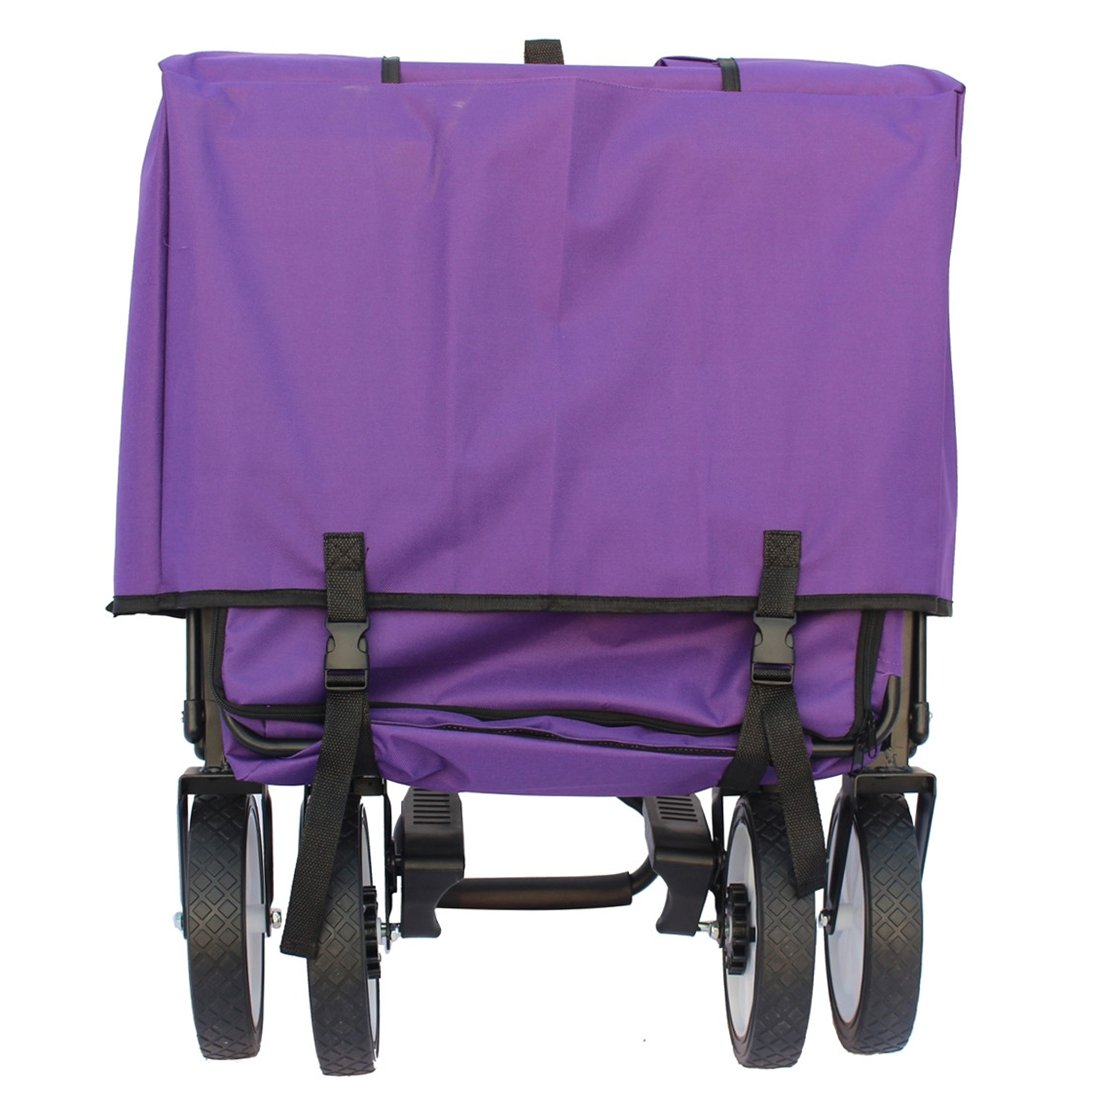 Sports God Folding Wagon Collapsible Utility Graden Cart with Removable Canopy + Storage Basket + FREE Cooler (Purple) by Sports God (Image #6)